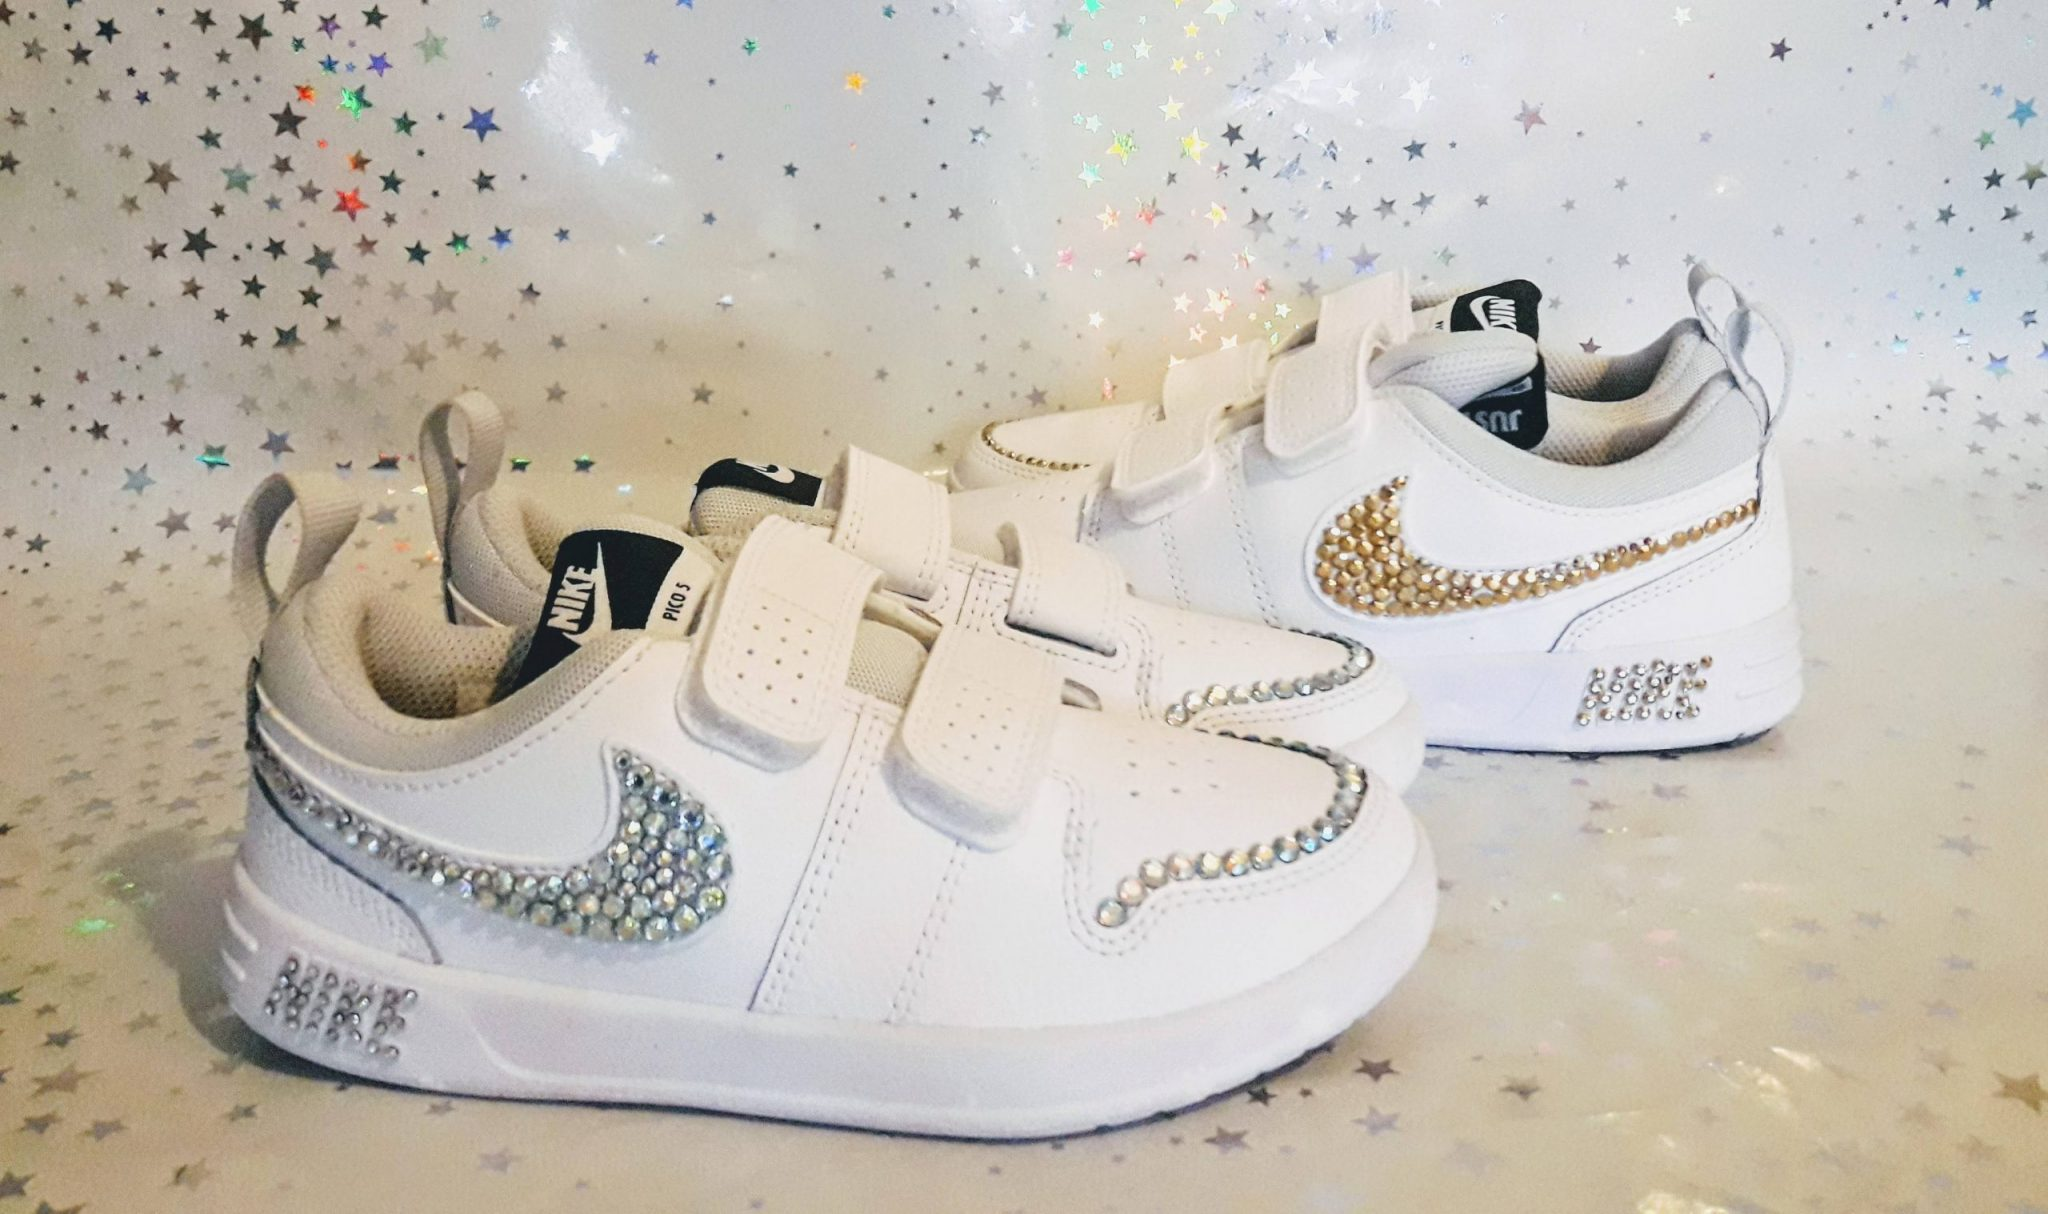 Nike trainers blinged up in choice of colour